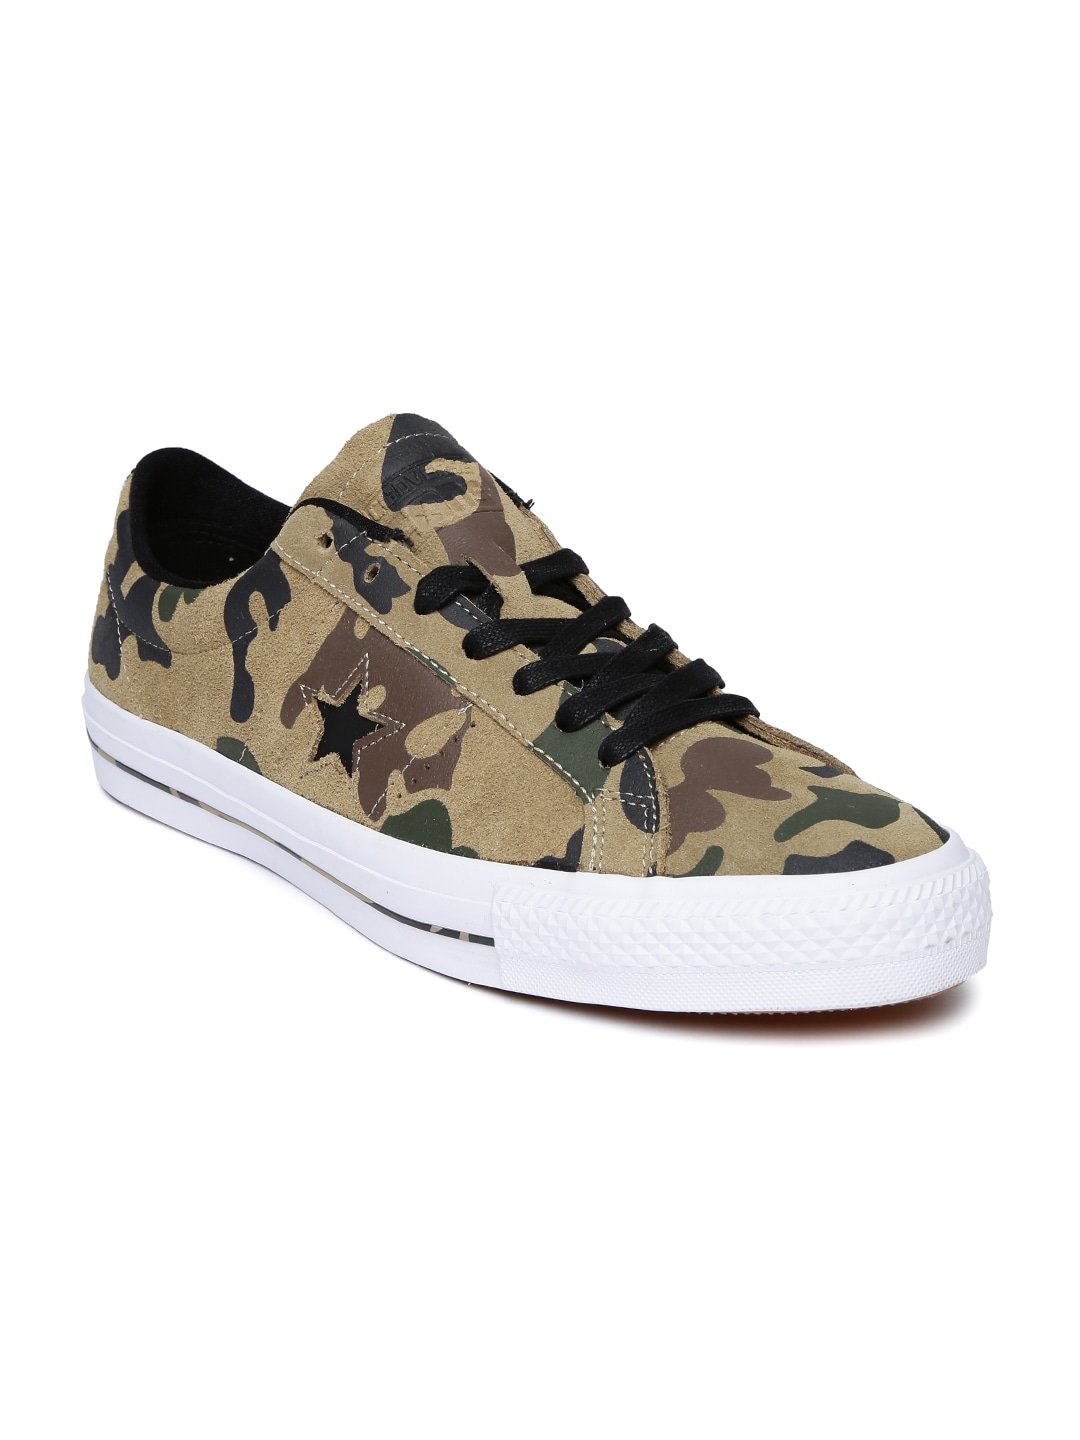 Converse Unisex Olive Green Camouflage Print Suede Skate Shoes